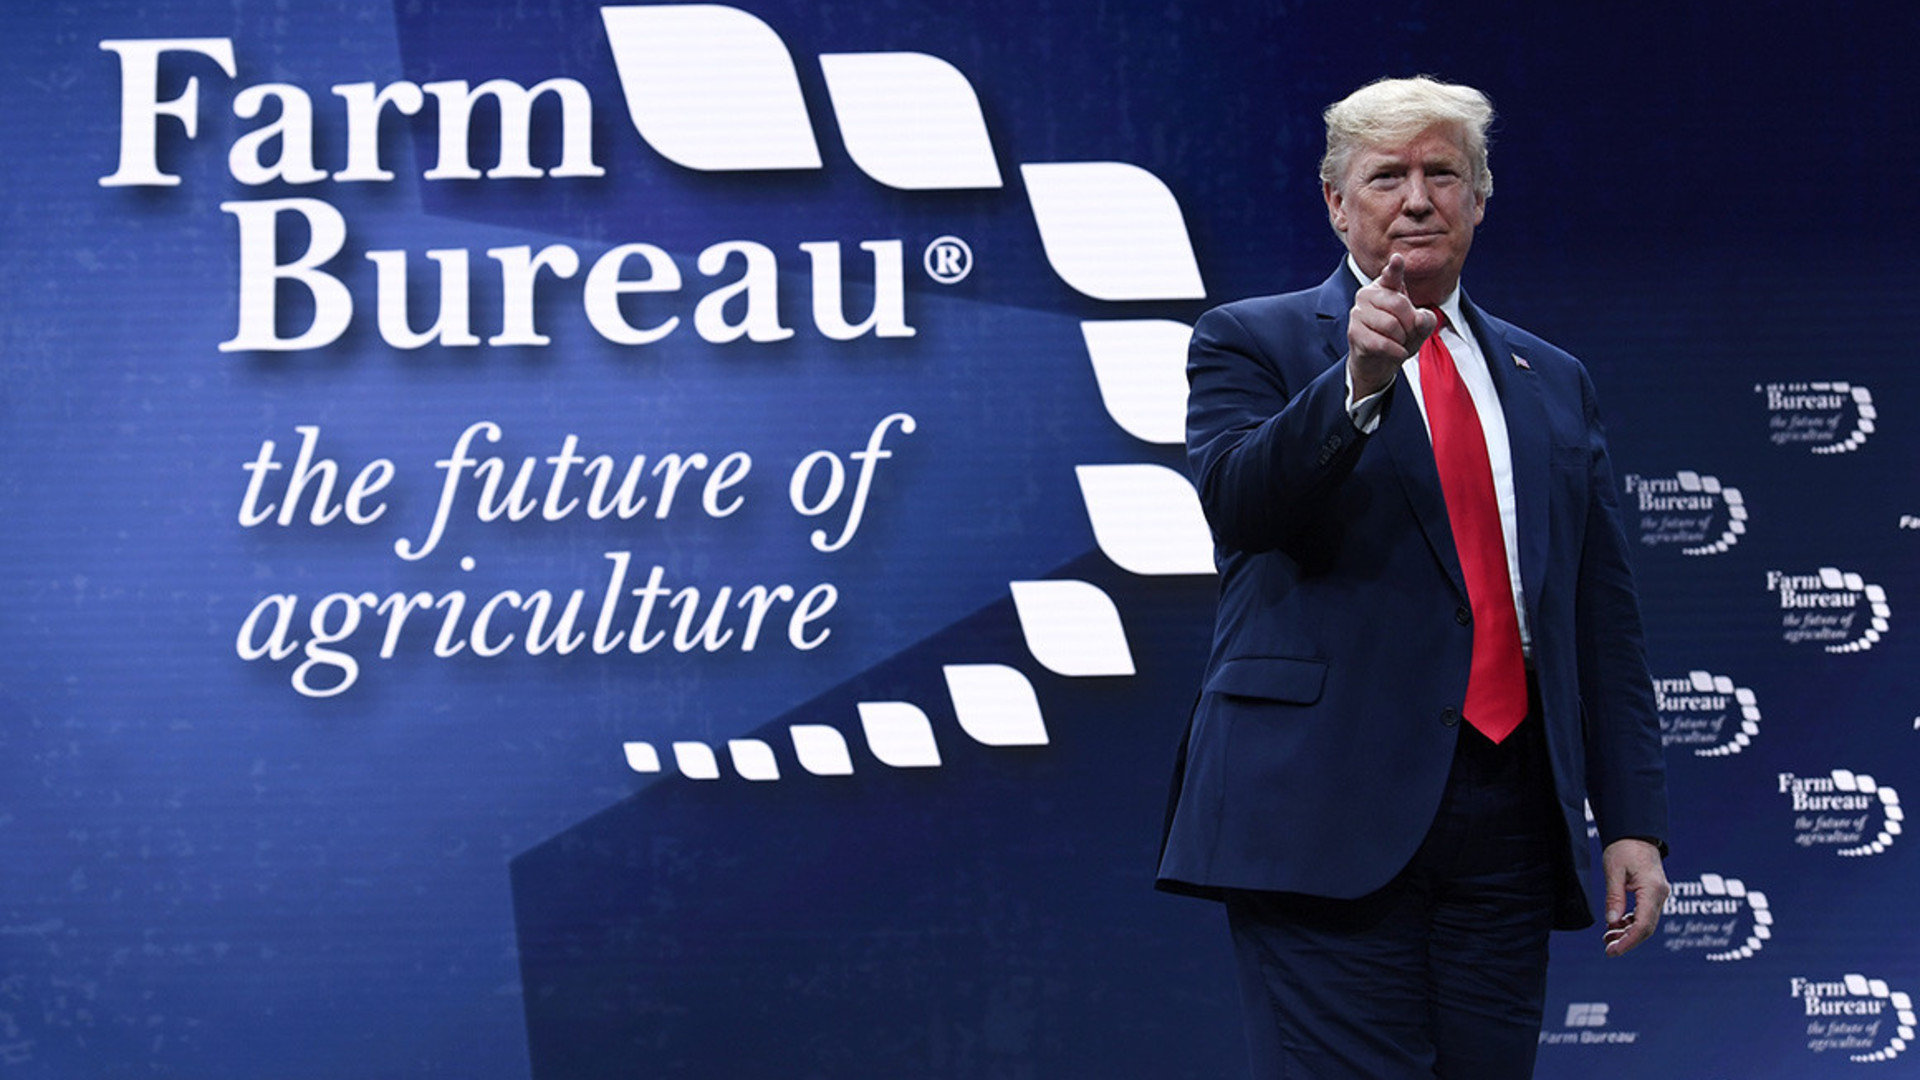 President Trump Speaks at Farm Bureau Convention